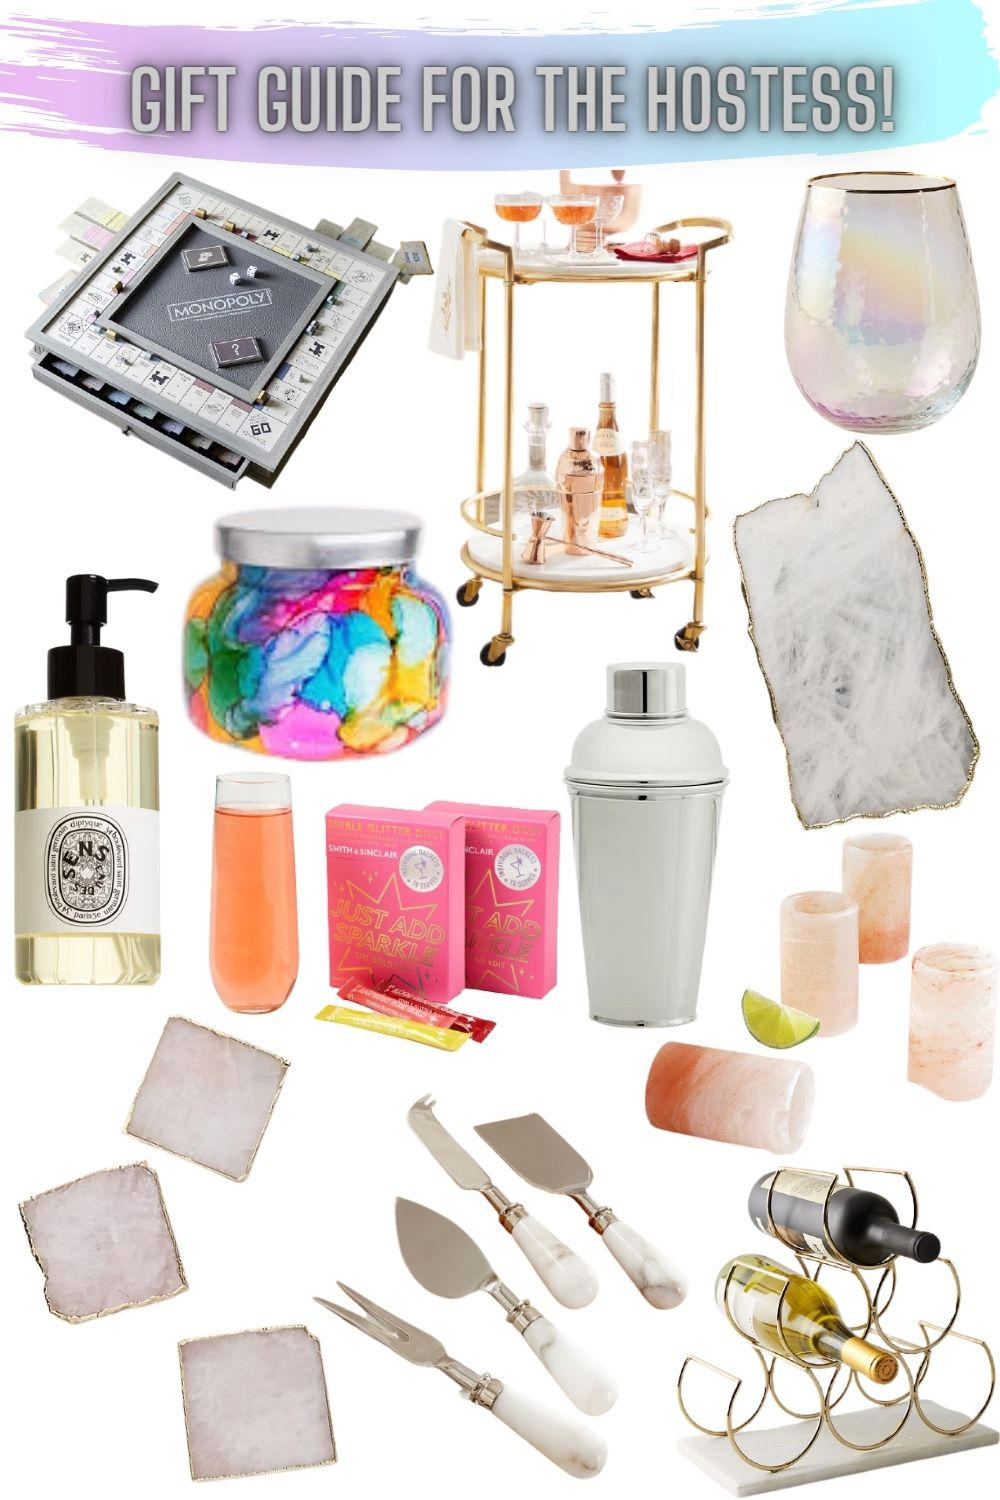 2020 Gift Guide For The Hostess!